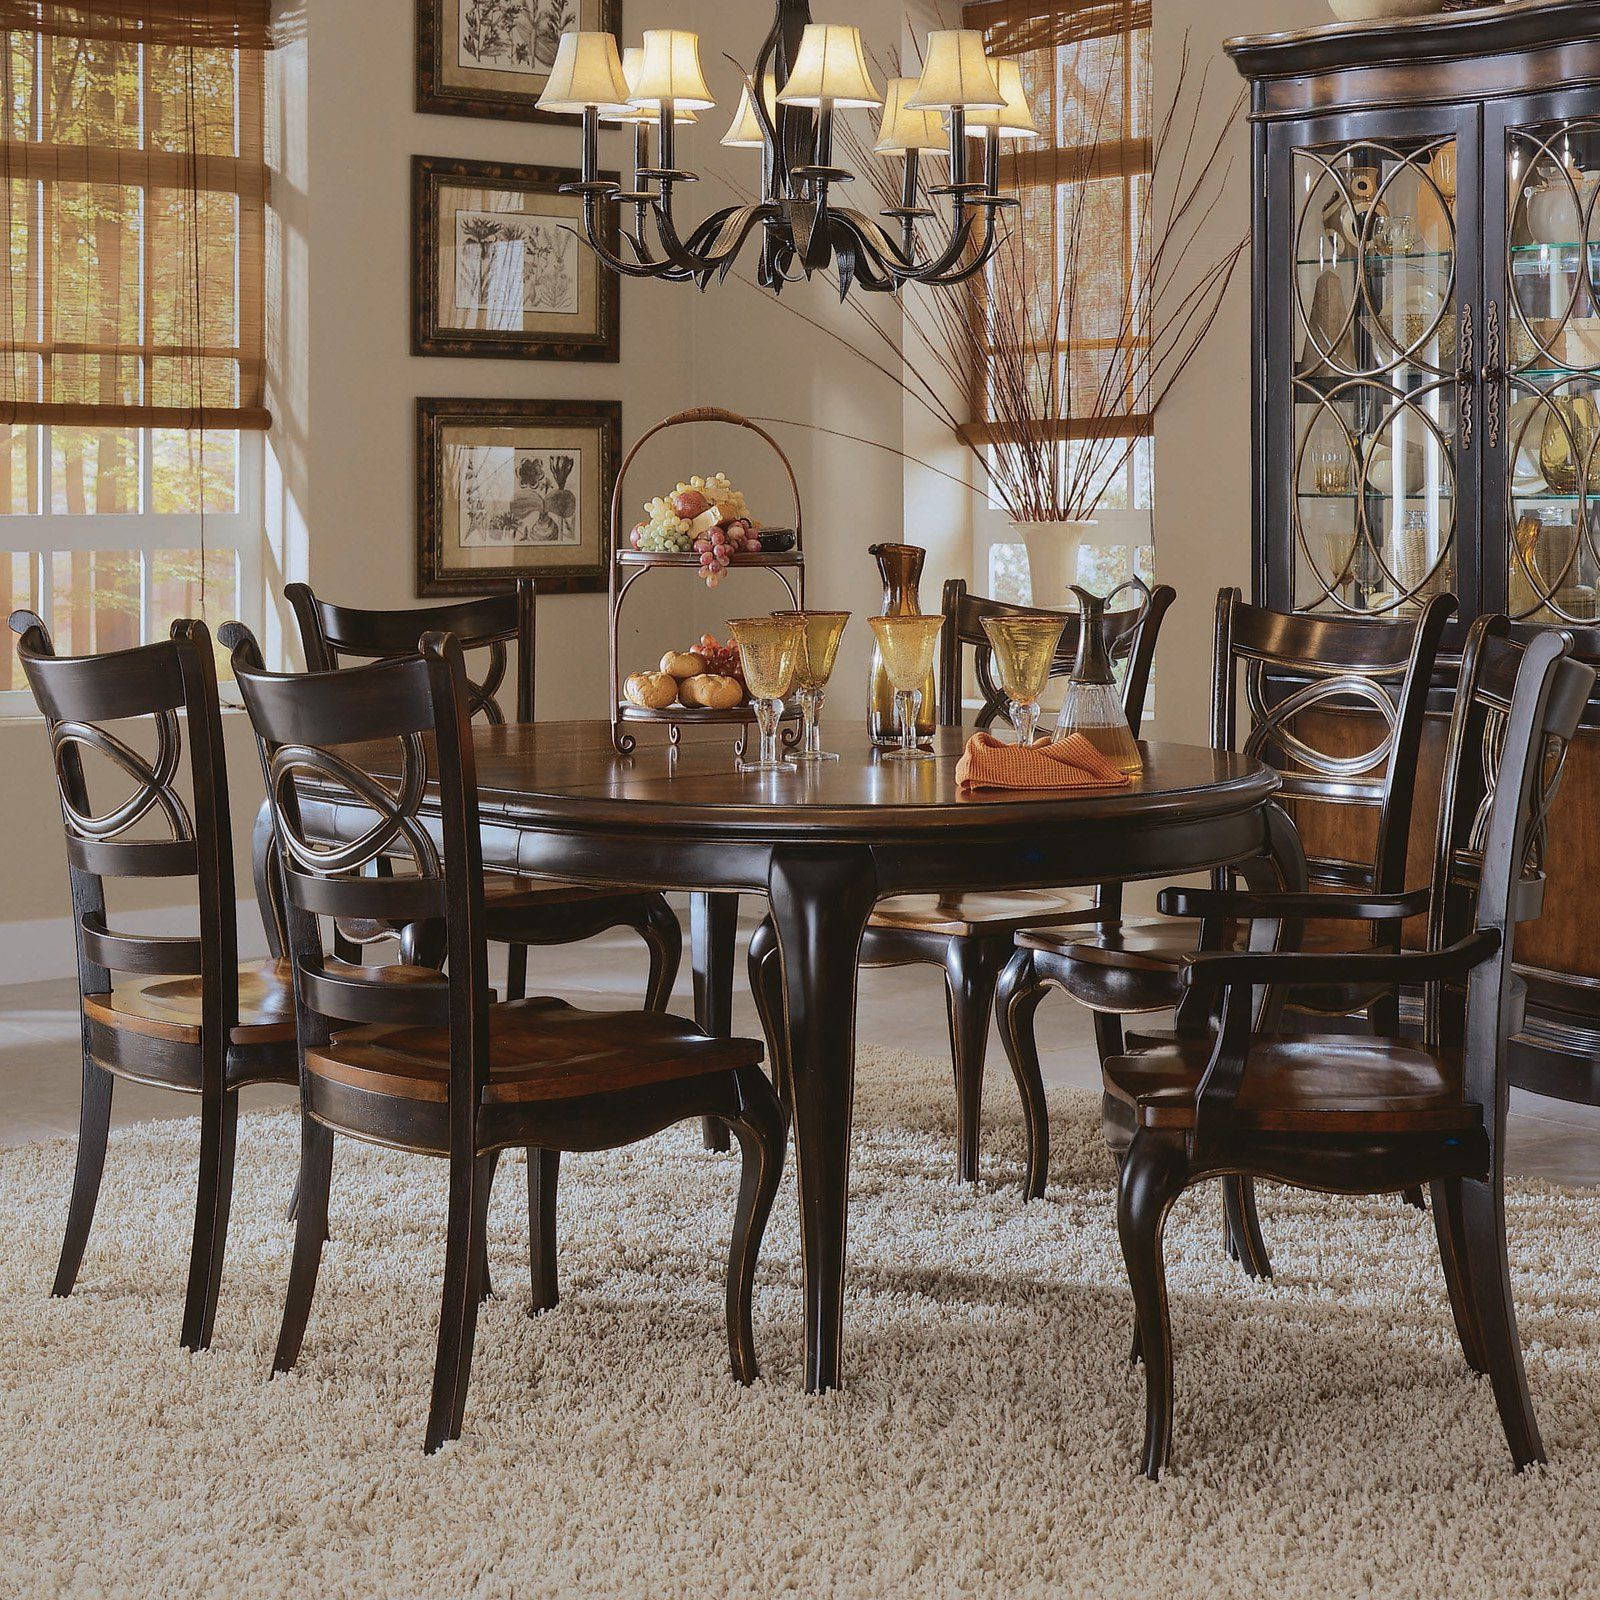 Hooker Furniture Preston Ridge 7 Piece Oval Dining Set  With Mesmerizing Oval Dining Room Table And Chairs Design Decoration